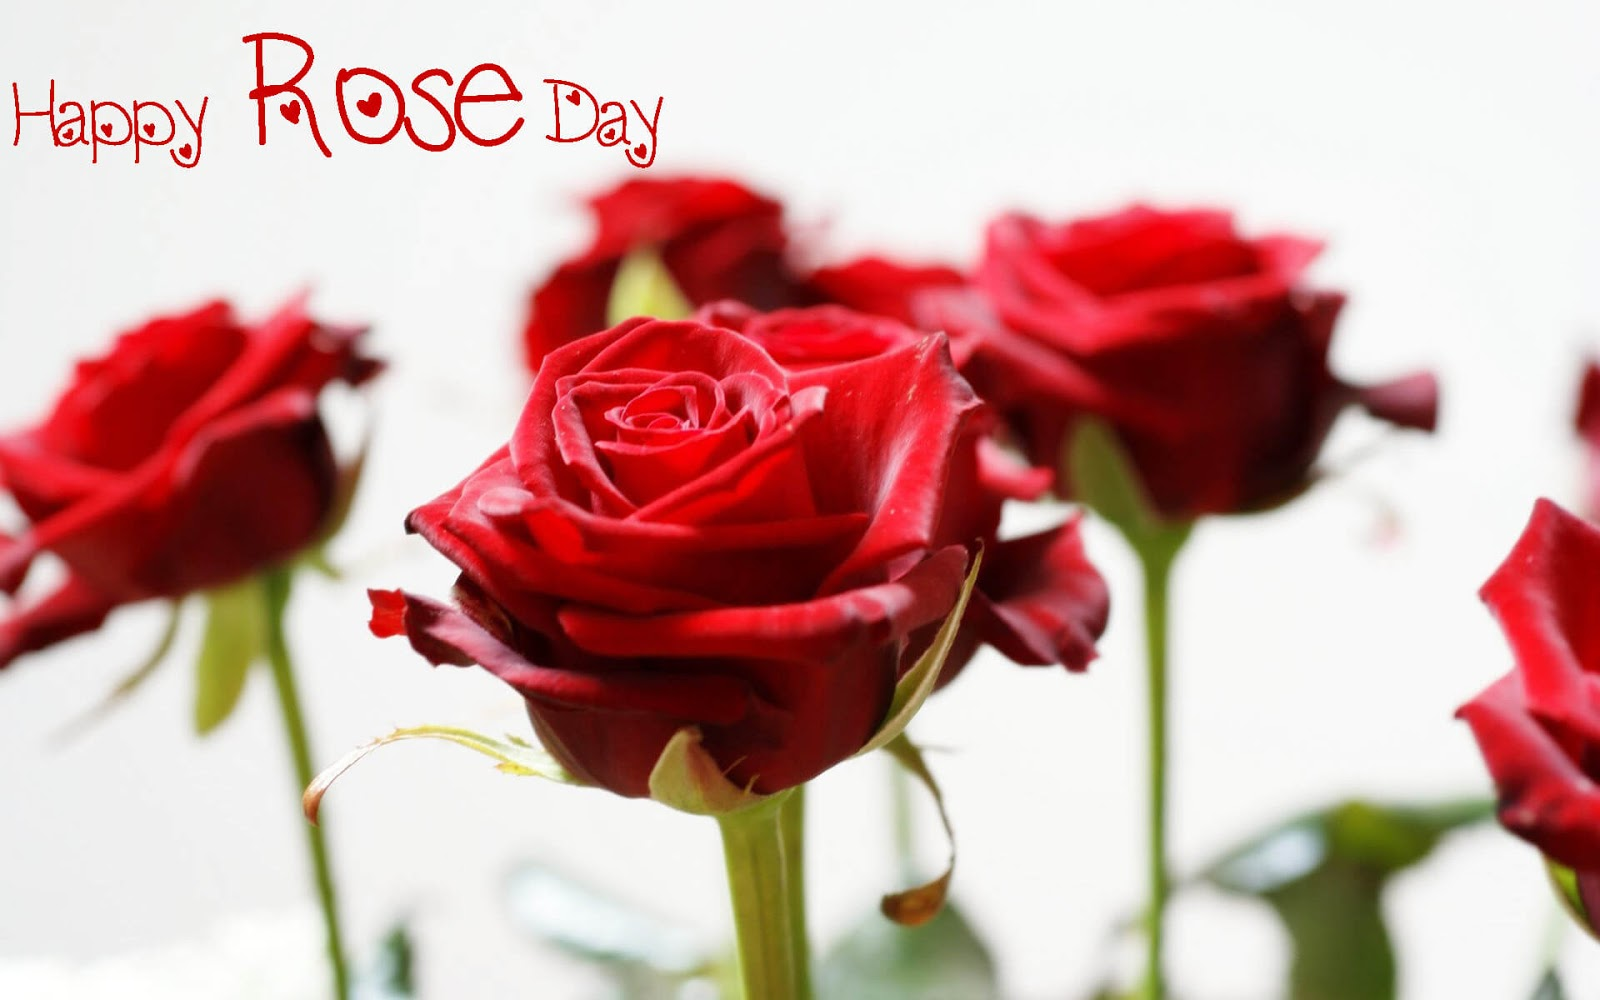 Happy Rose Day Wishes Quotes in Punjabi Language